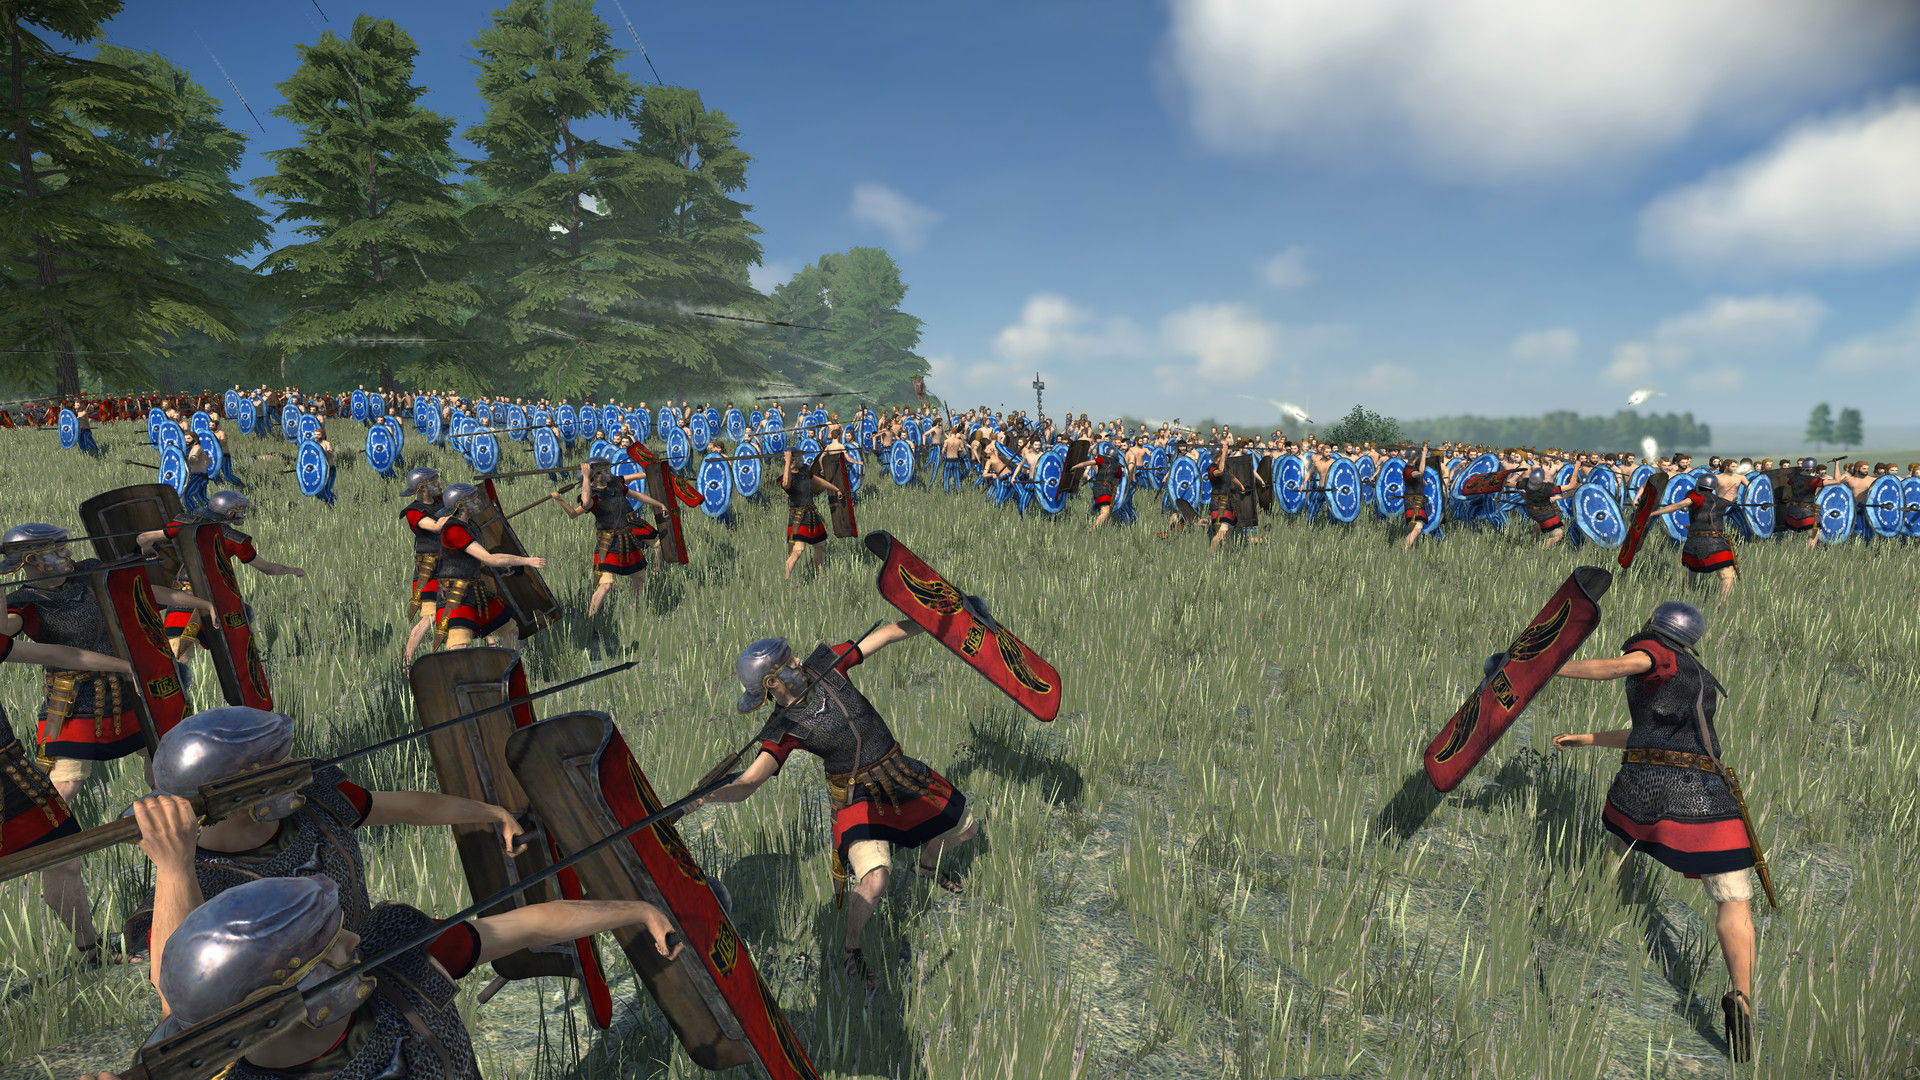 Soldiers throwing spears